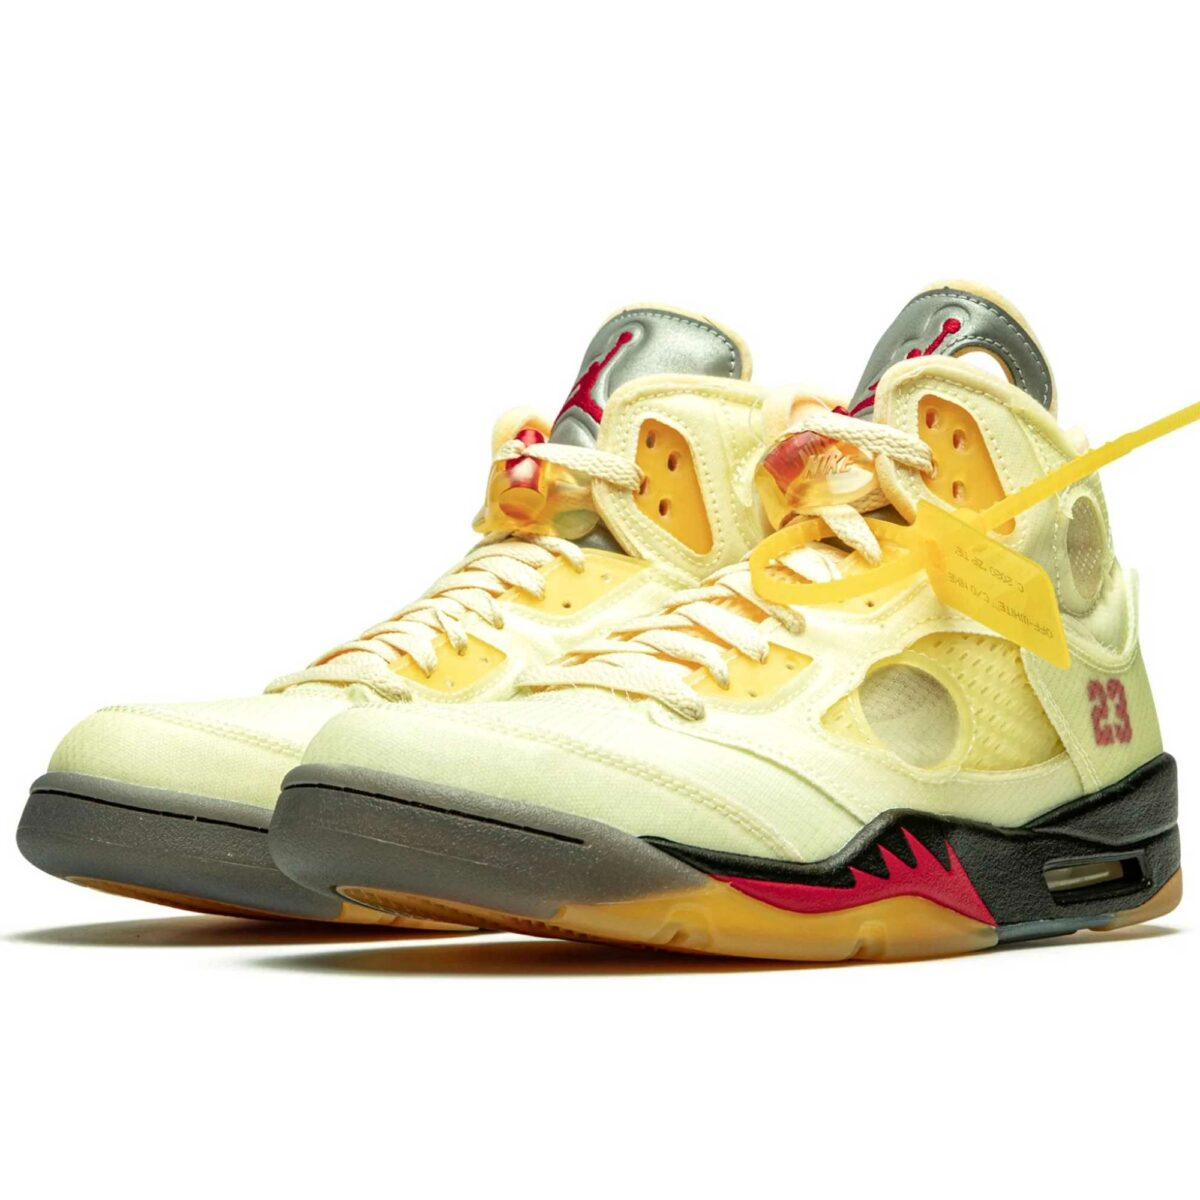 nike x off-white air Jordan 5 sail DH8565_100 купить